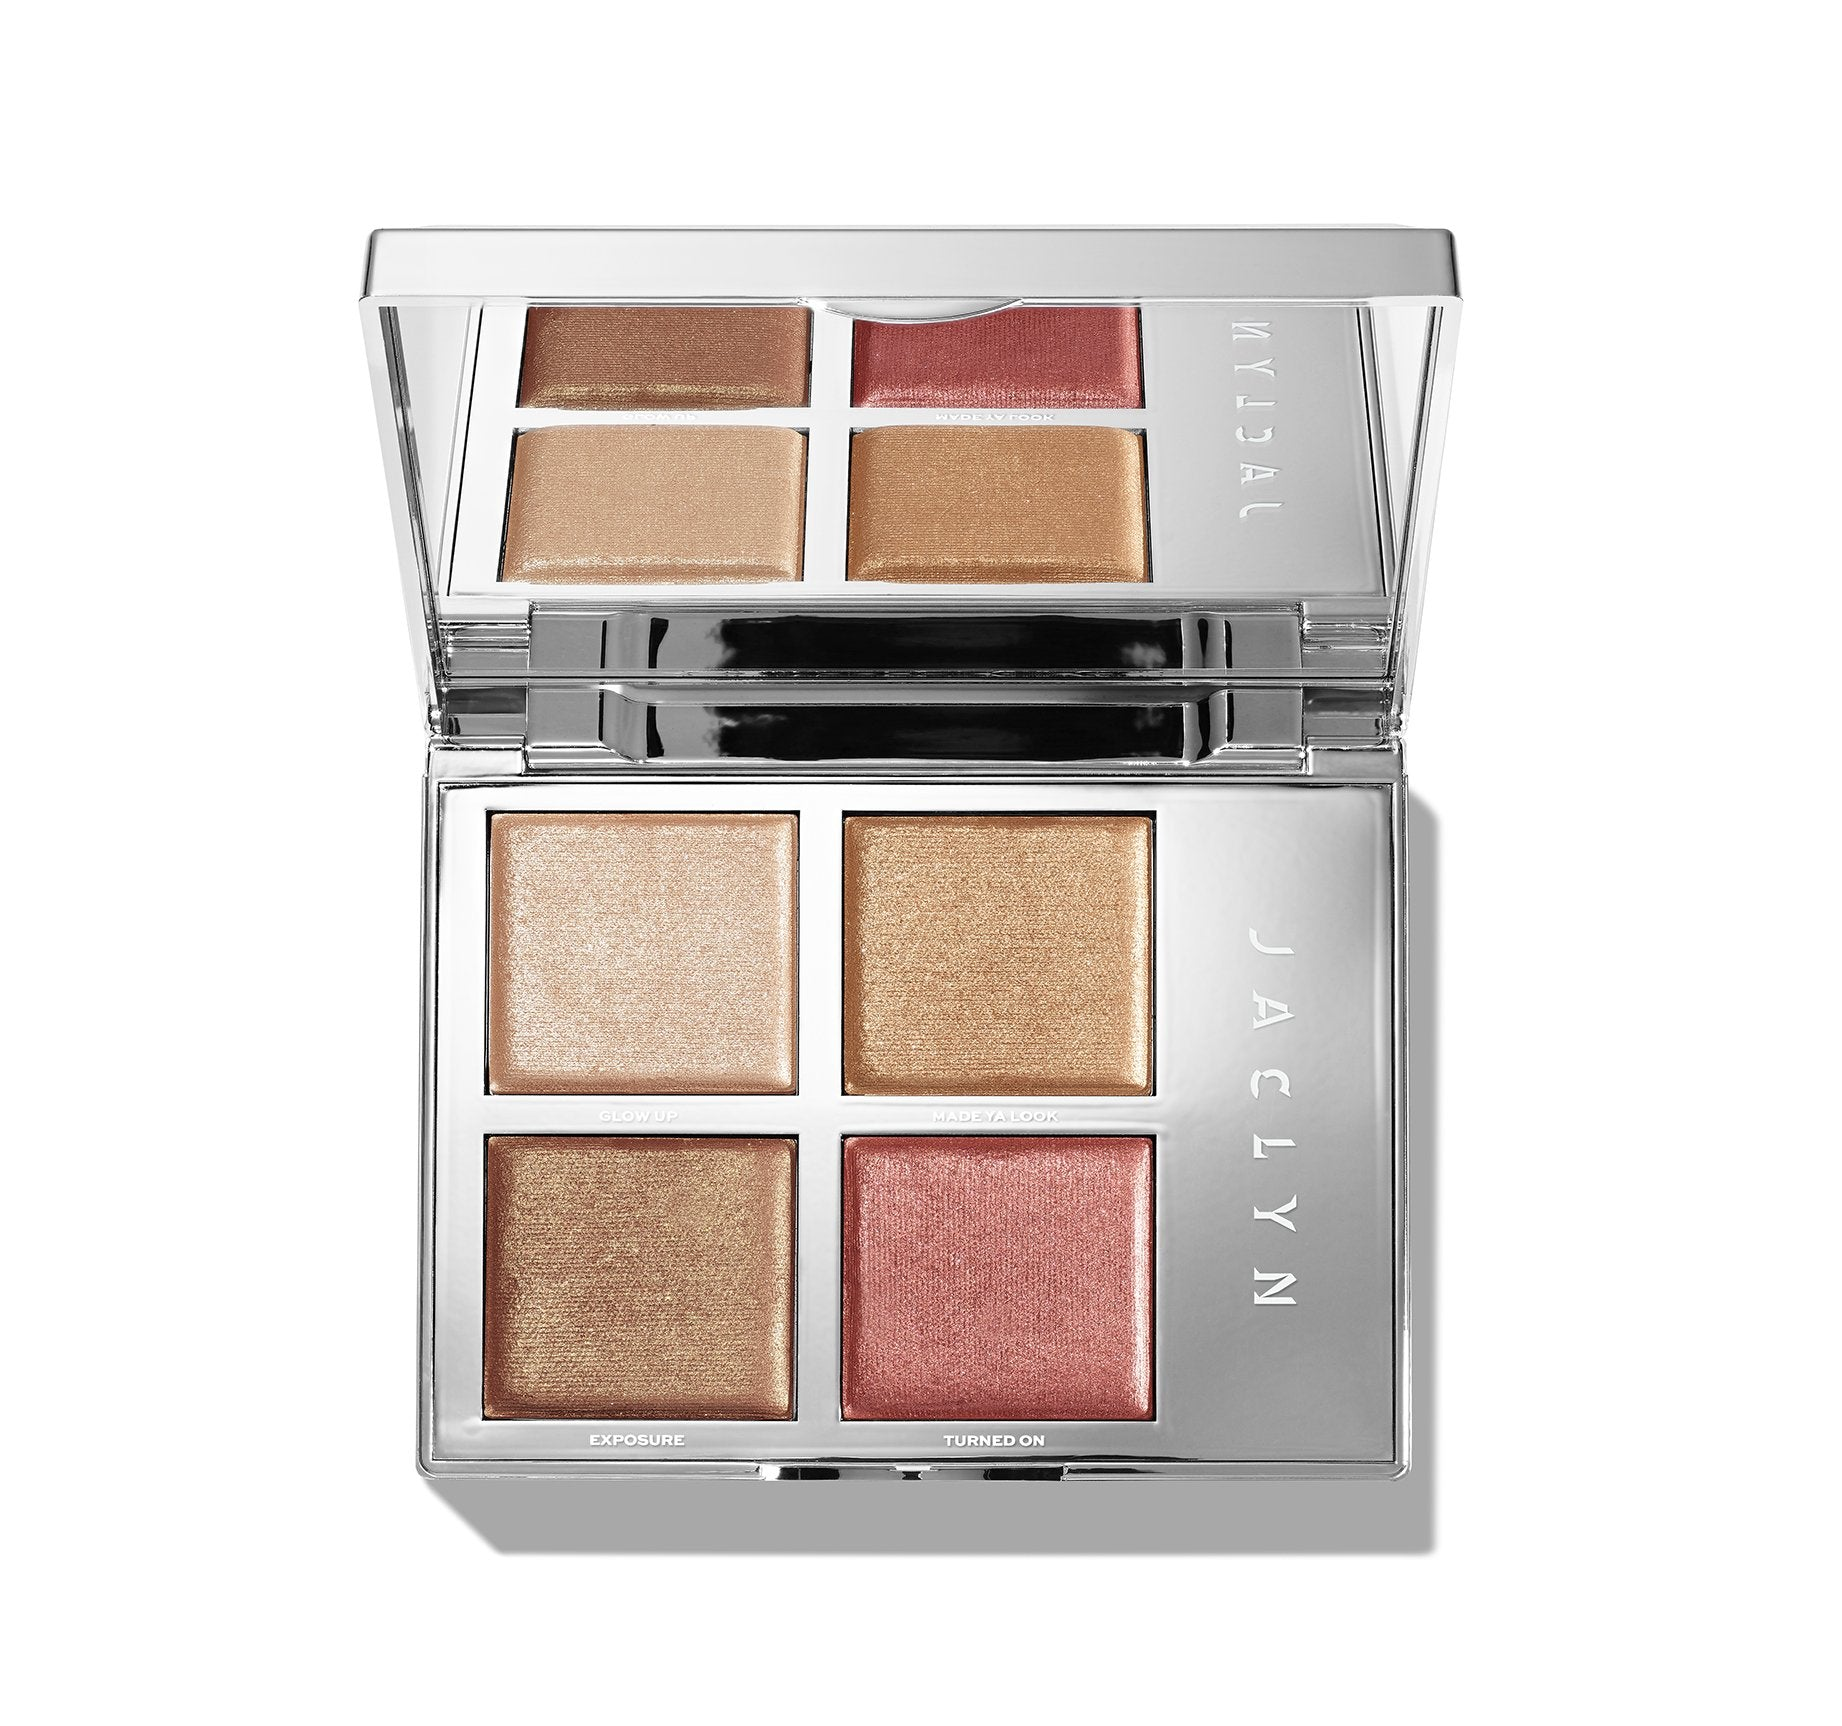 ACCENT LIGHT HIGHLIGHTERPALETTE - THE FLARE, Größeres Bild anzeigen